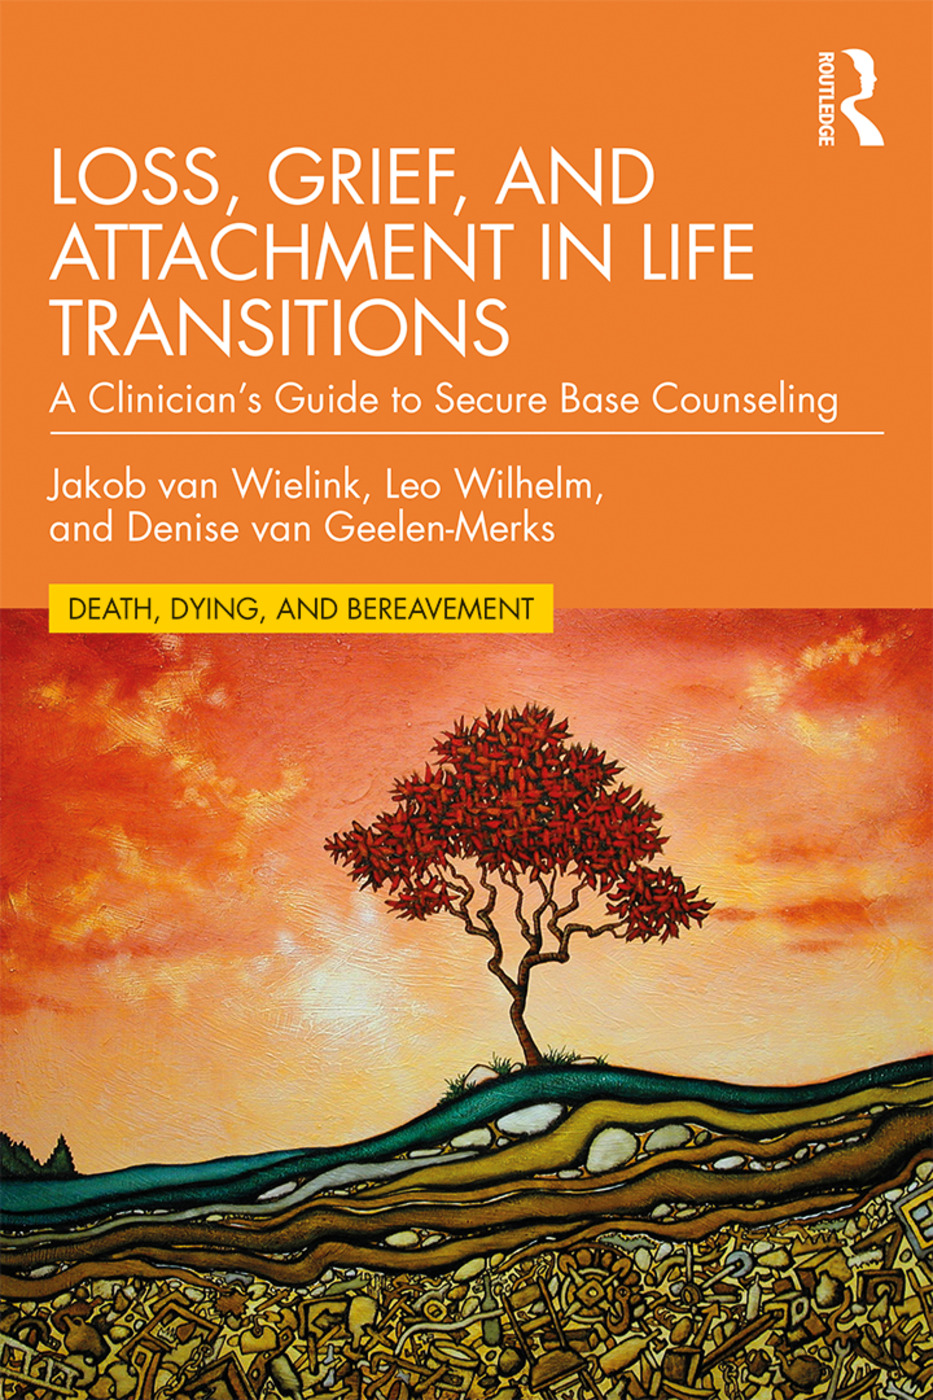 Loss, Grief, and Attachment in Life Transitions: A Clinician's Guide to Secure Base Counseling book cover